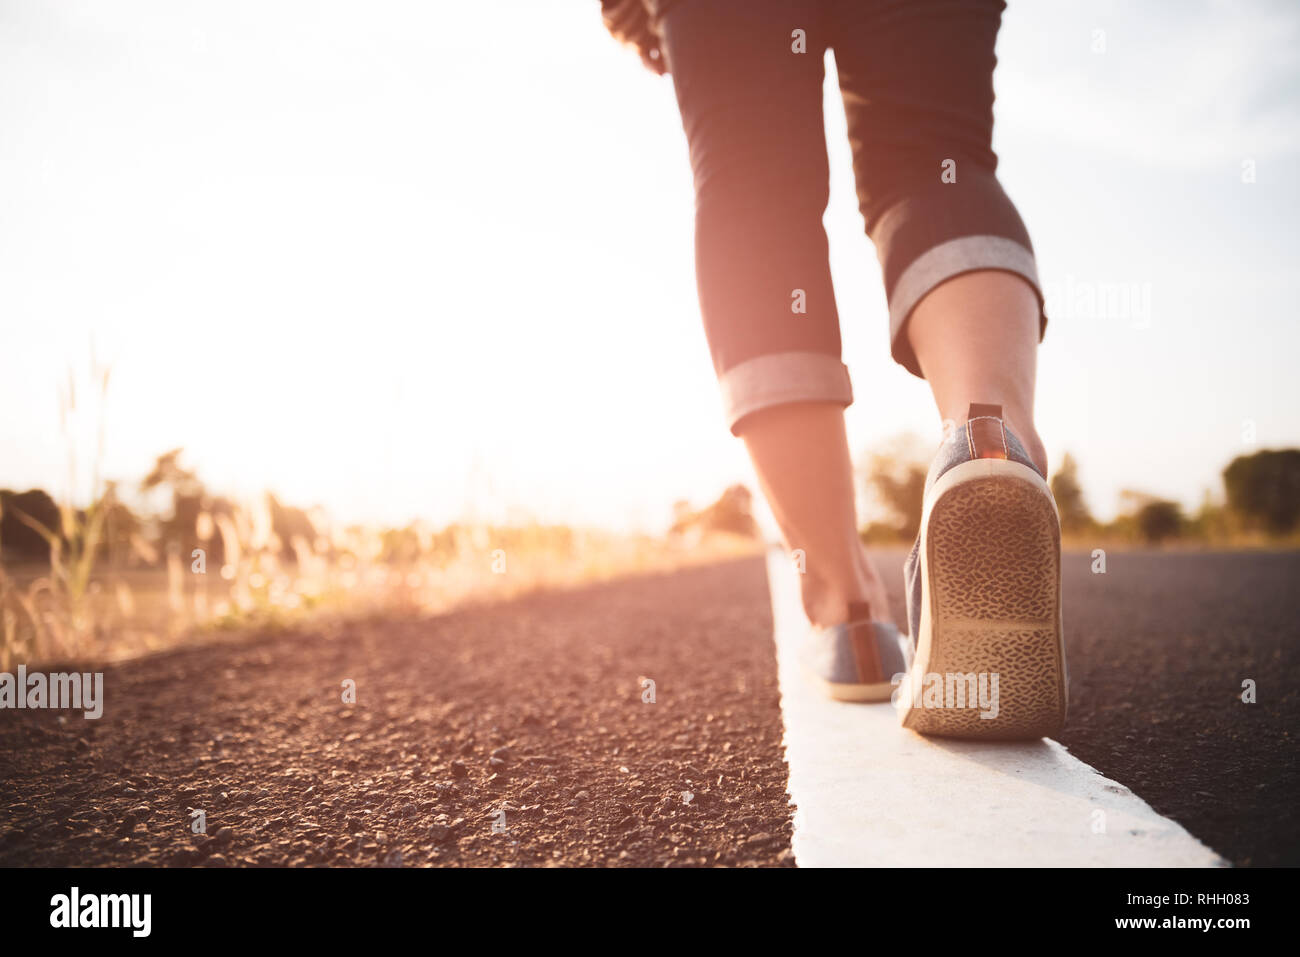 Closeup woman walking towards on the road side. Step concept. Stock Photo